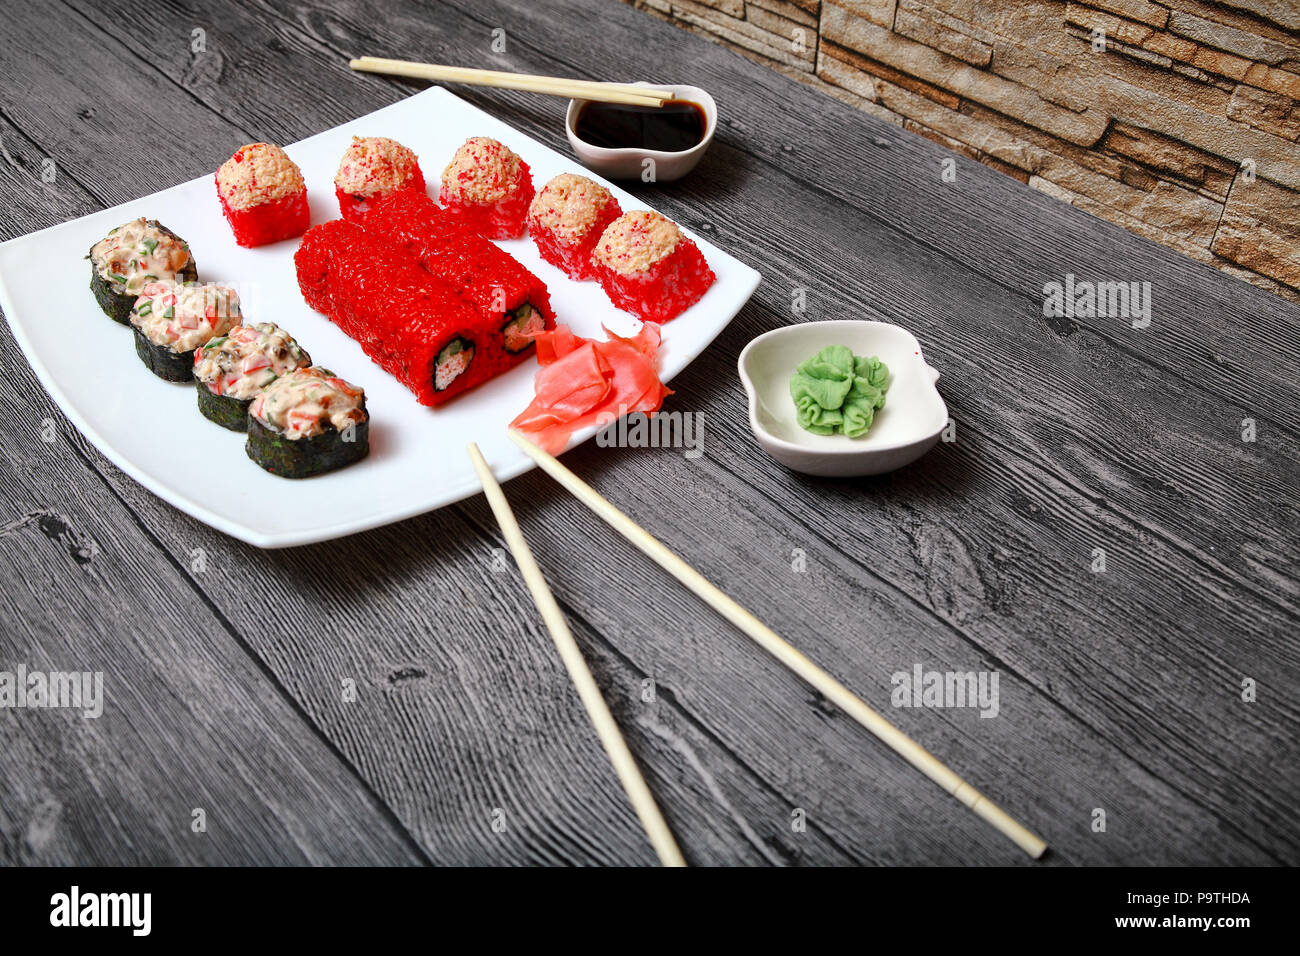 Japanese cuisine. On the table of the restaurant are beautifully laid out a set of rolls, sauce, ginger and wasabi. Stock Photo